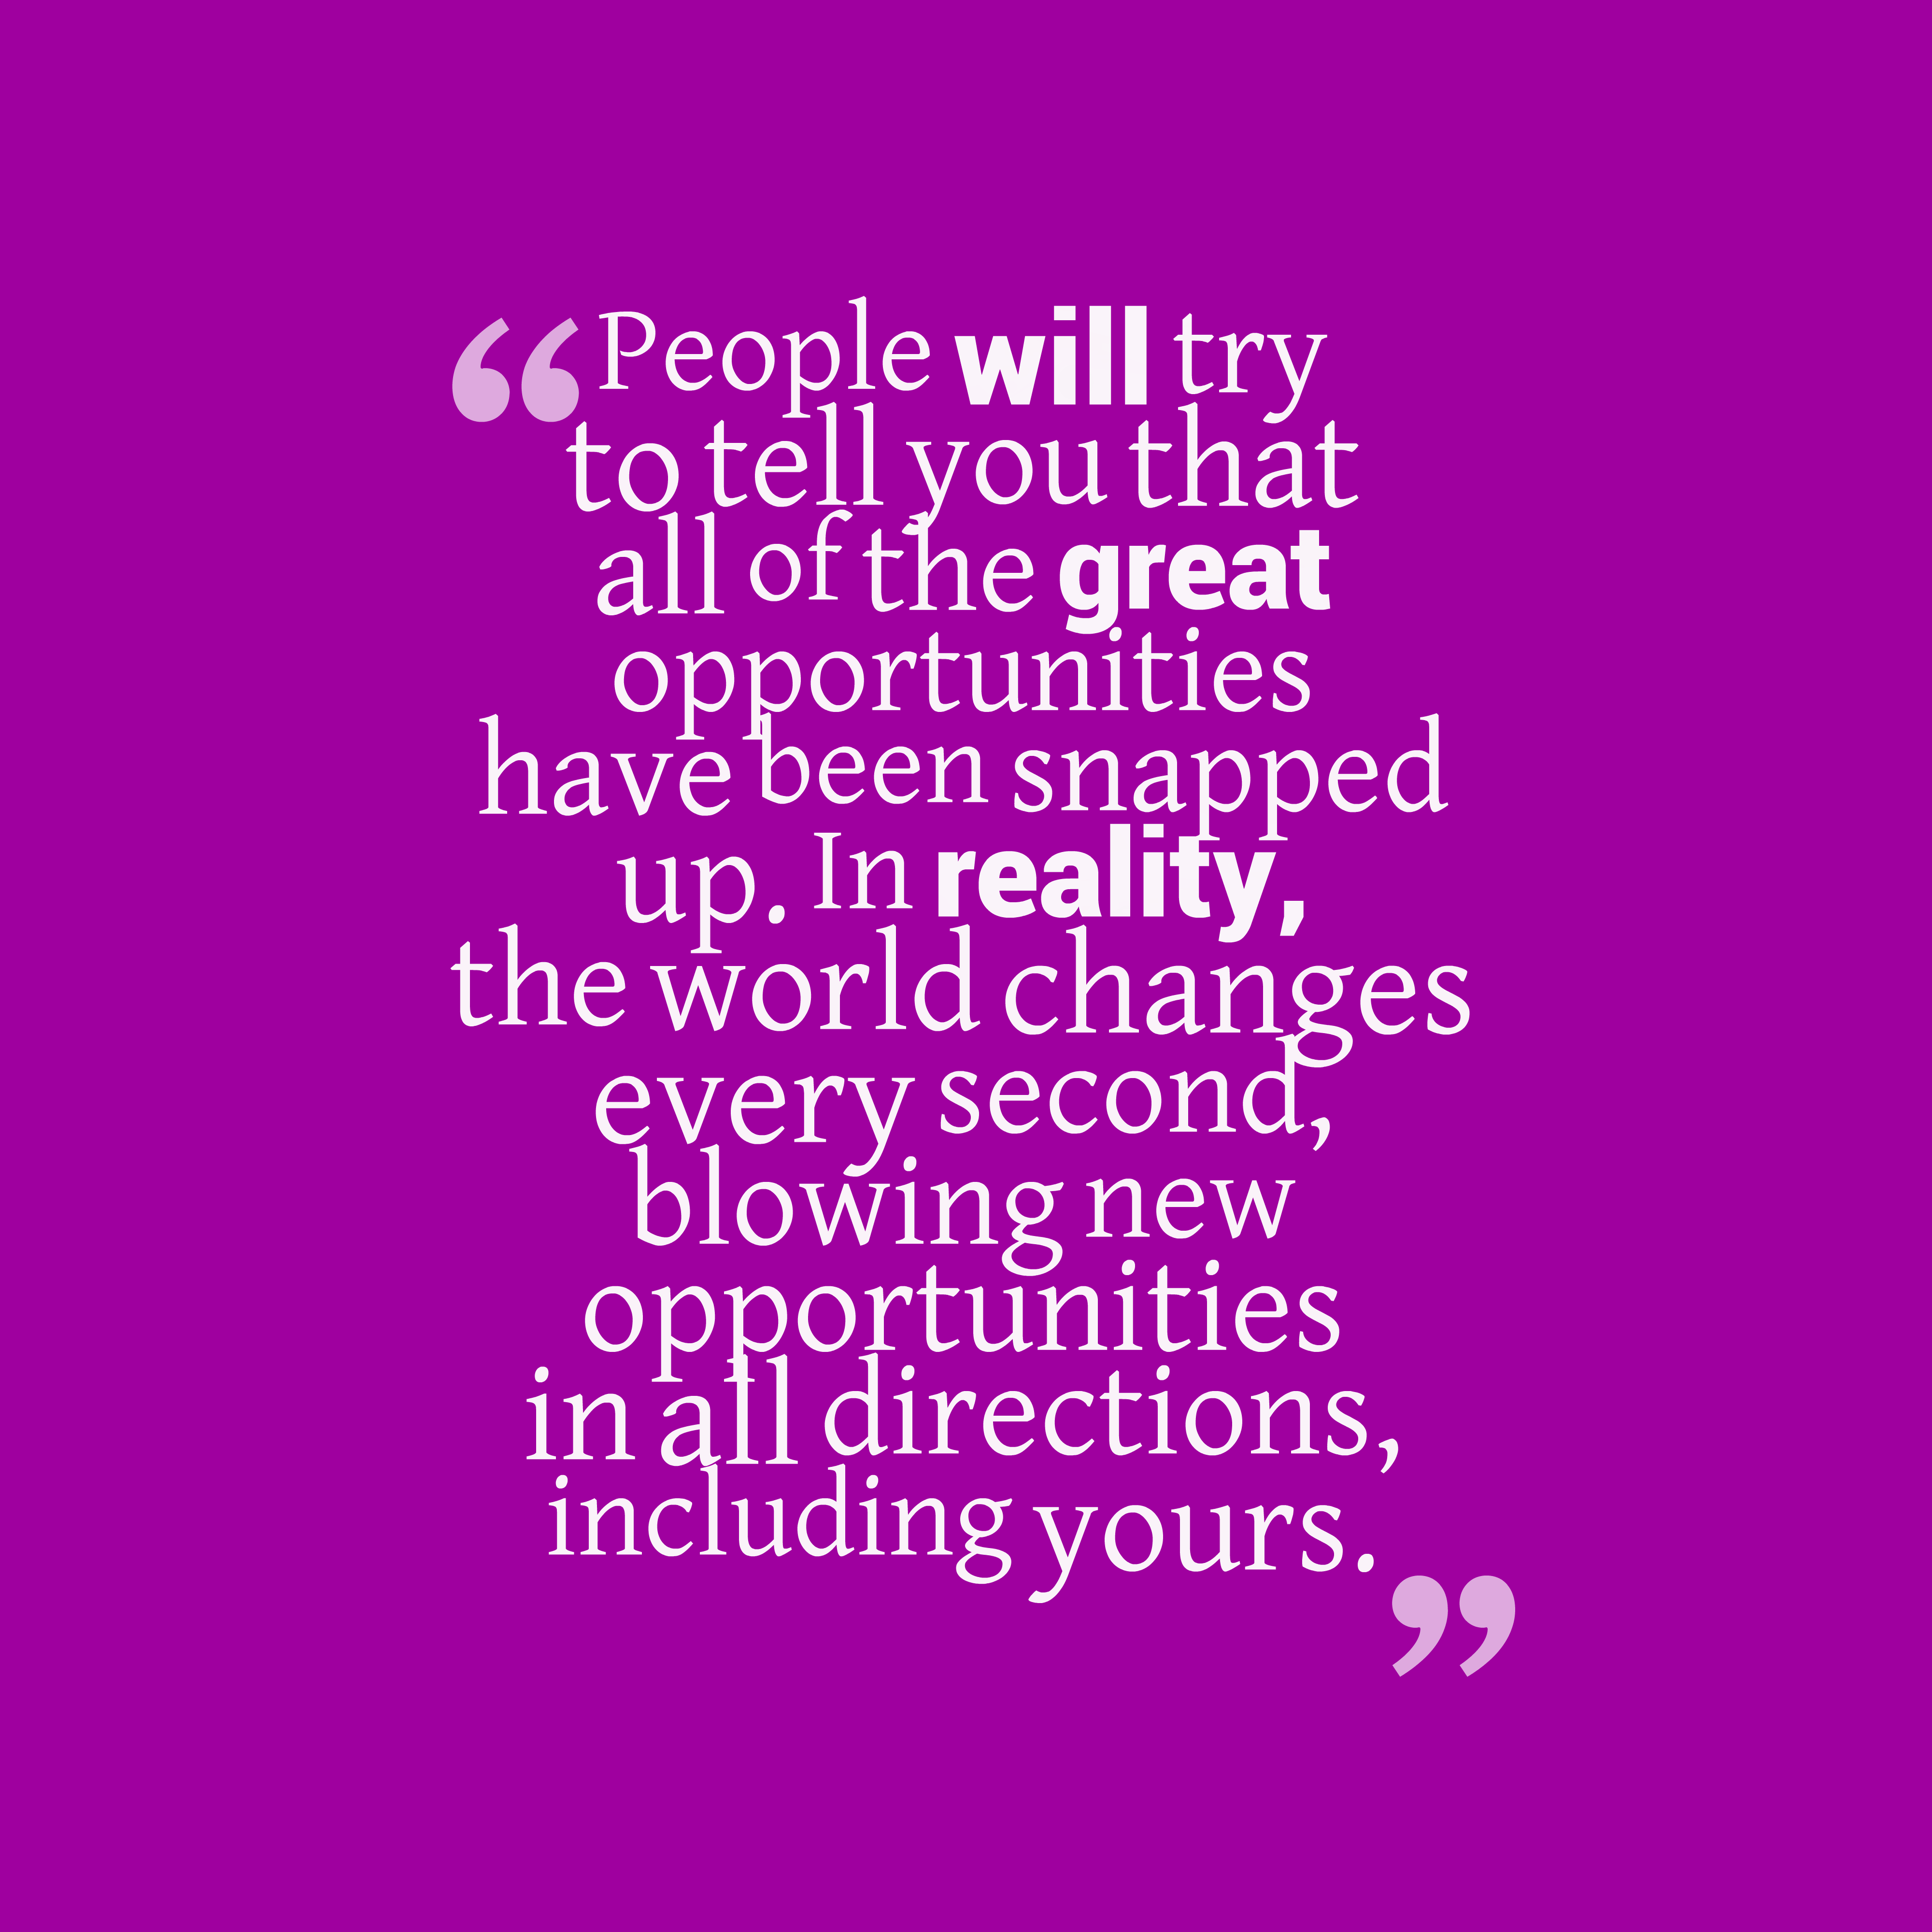 Quotes image of People will try to tell you that all of the great opportunities have been snapped up. In reality, the world changes every second, blowing new opportunities in all directions, including yours.